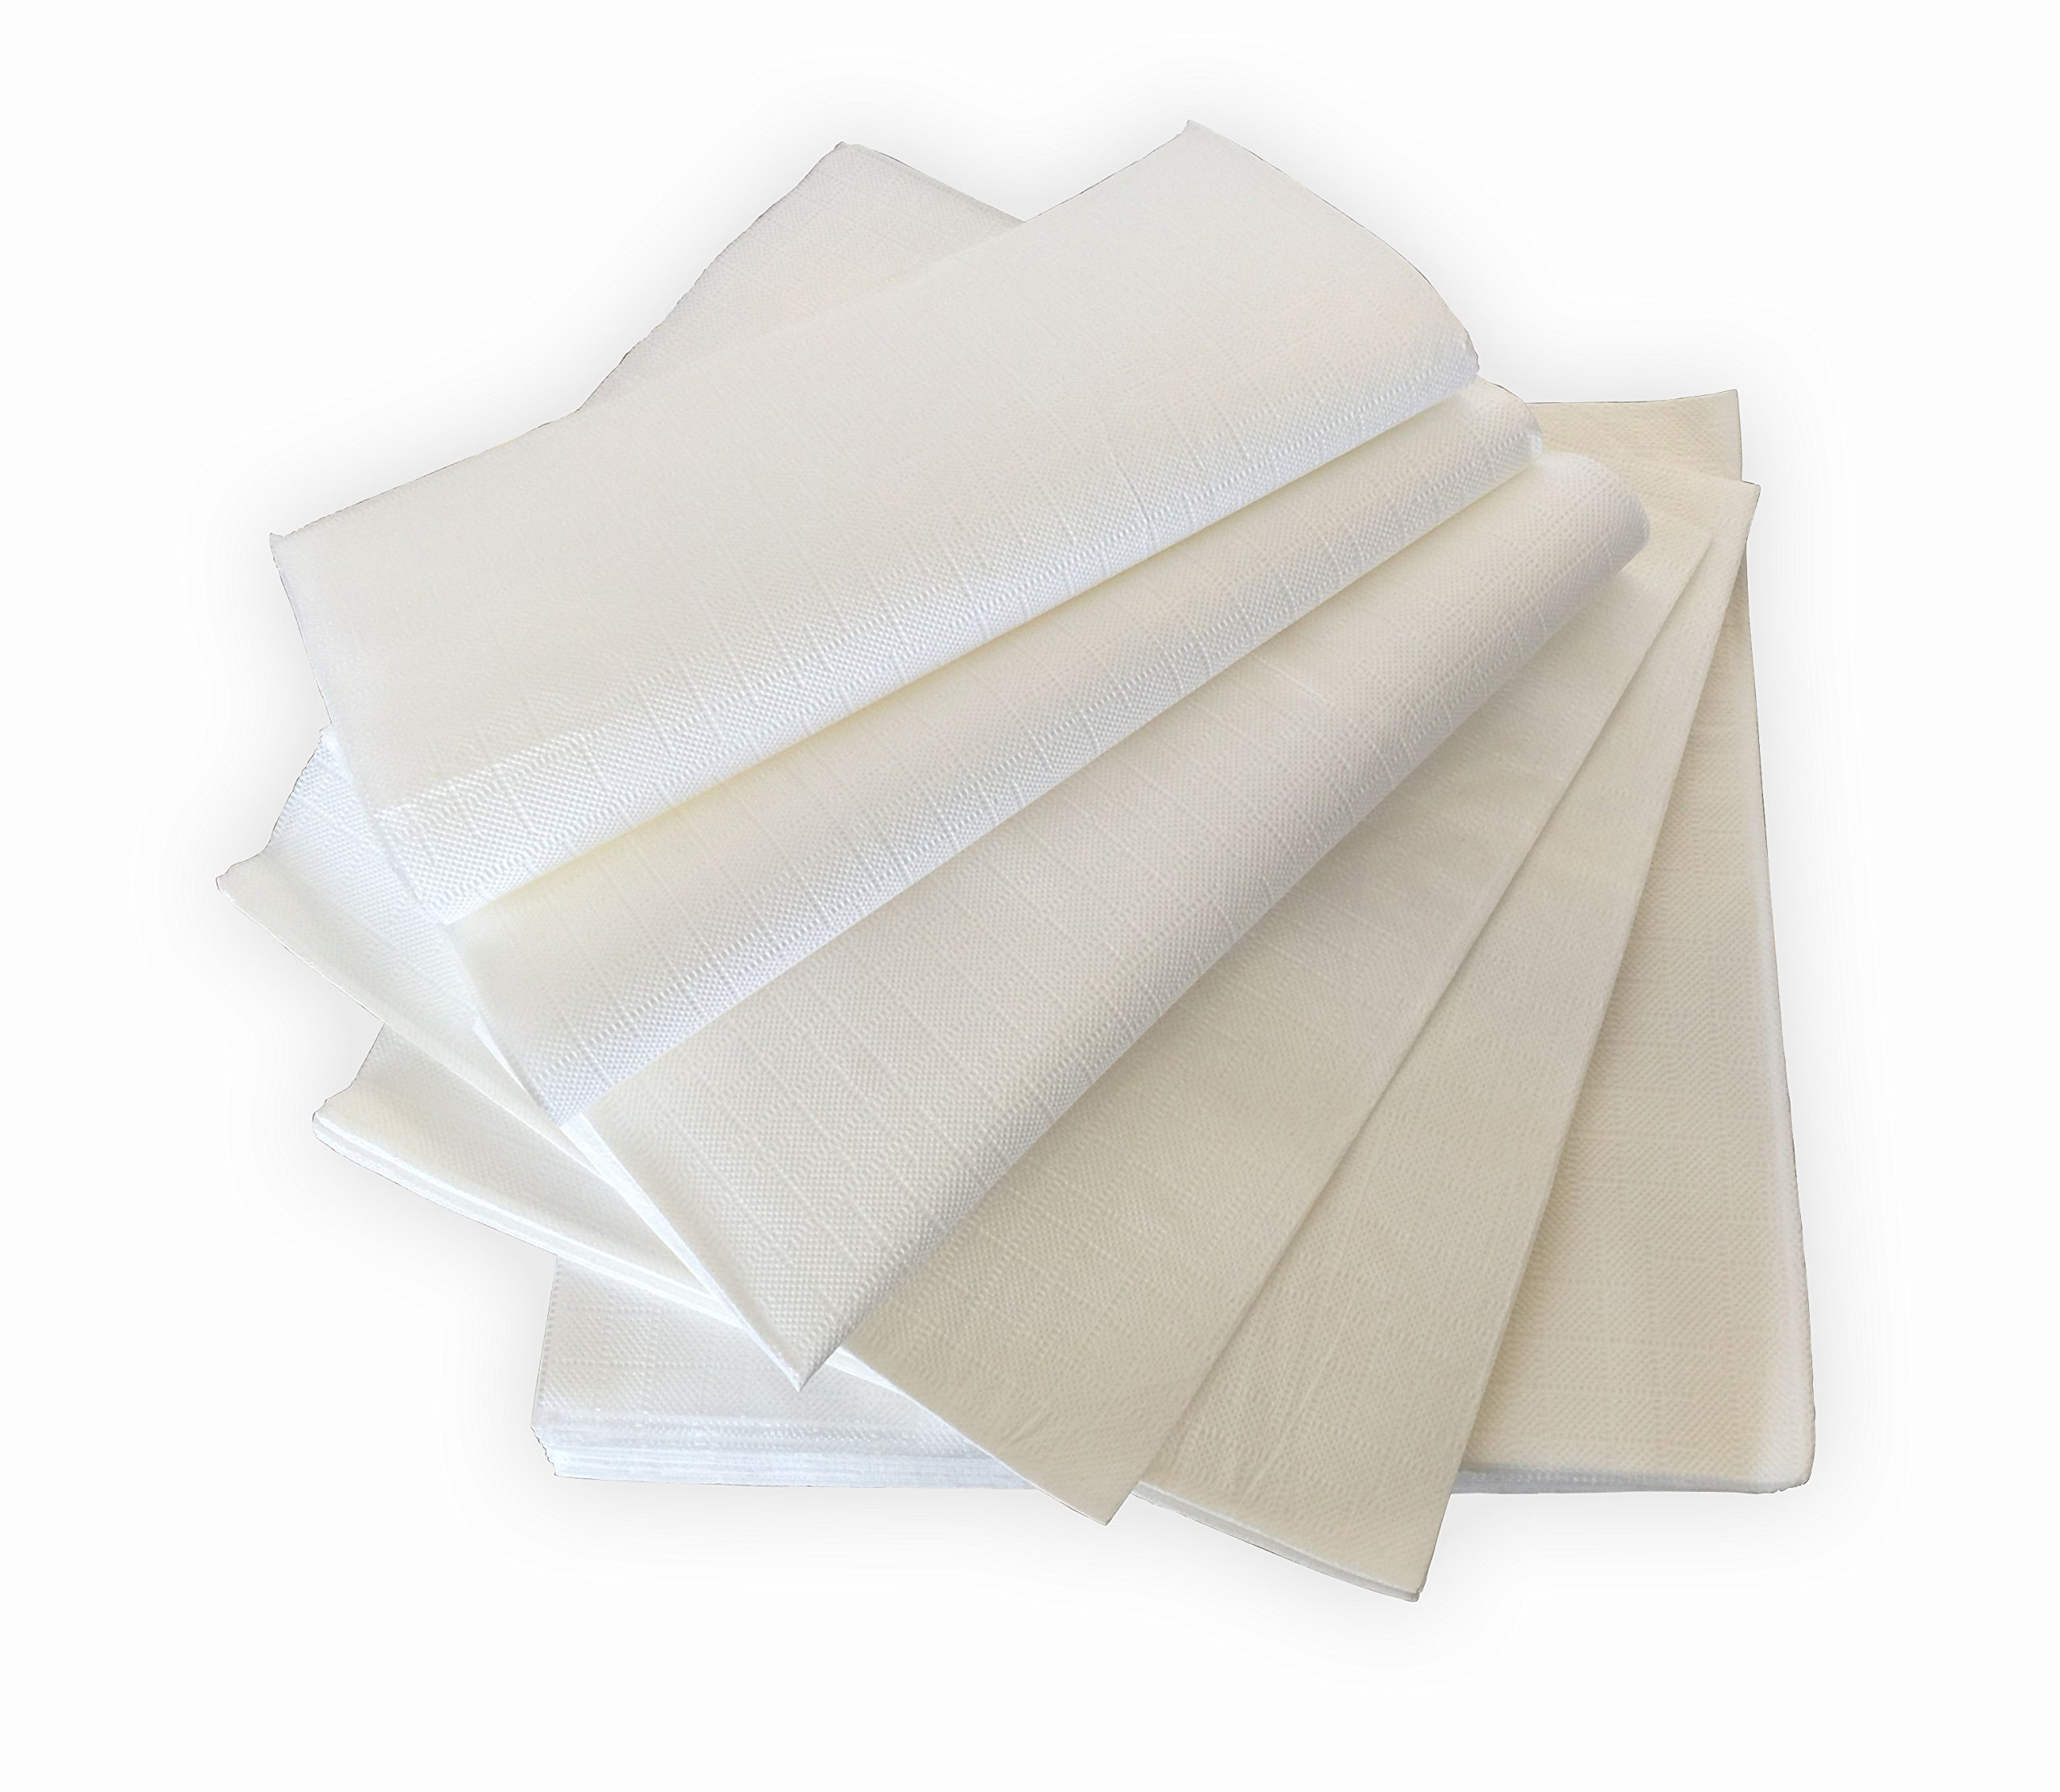 '' Occasions'' - 1440 Piece Pack - Premium 3 PLY - Wedding Party Dinner Paper Napkins (Square Fold)